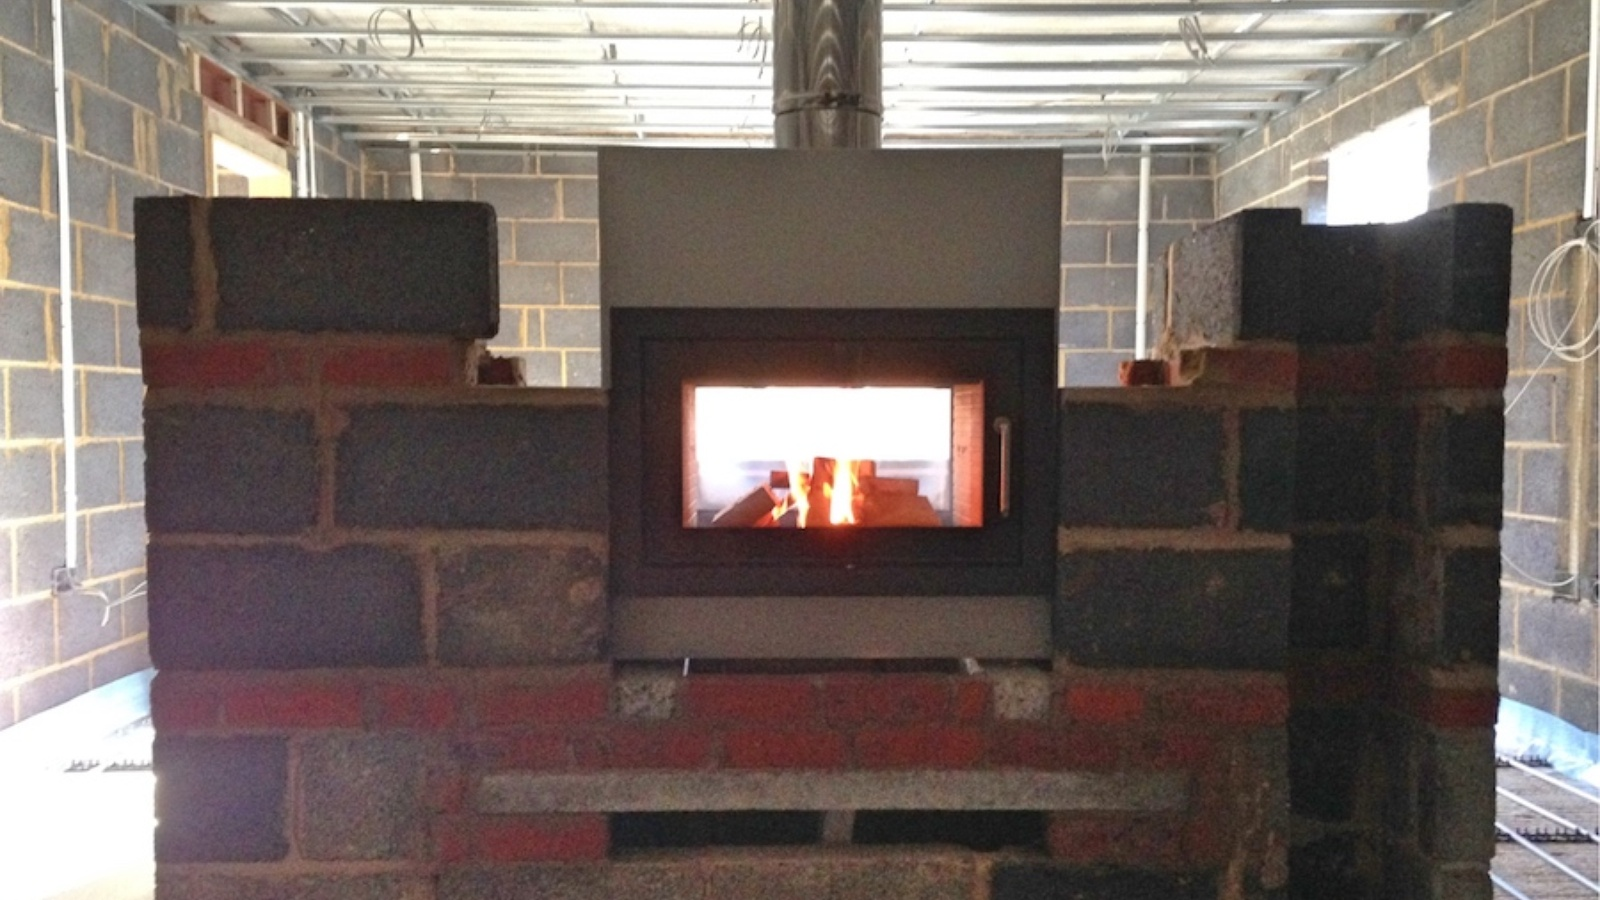 With the flue and stove installed, the builder can continue their works.